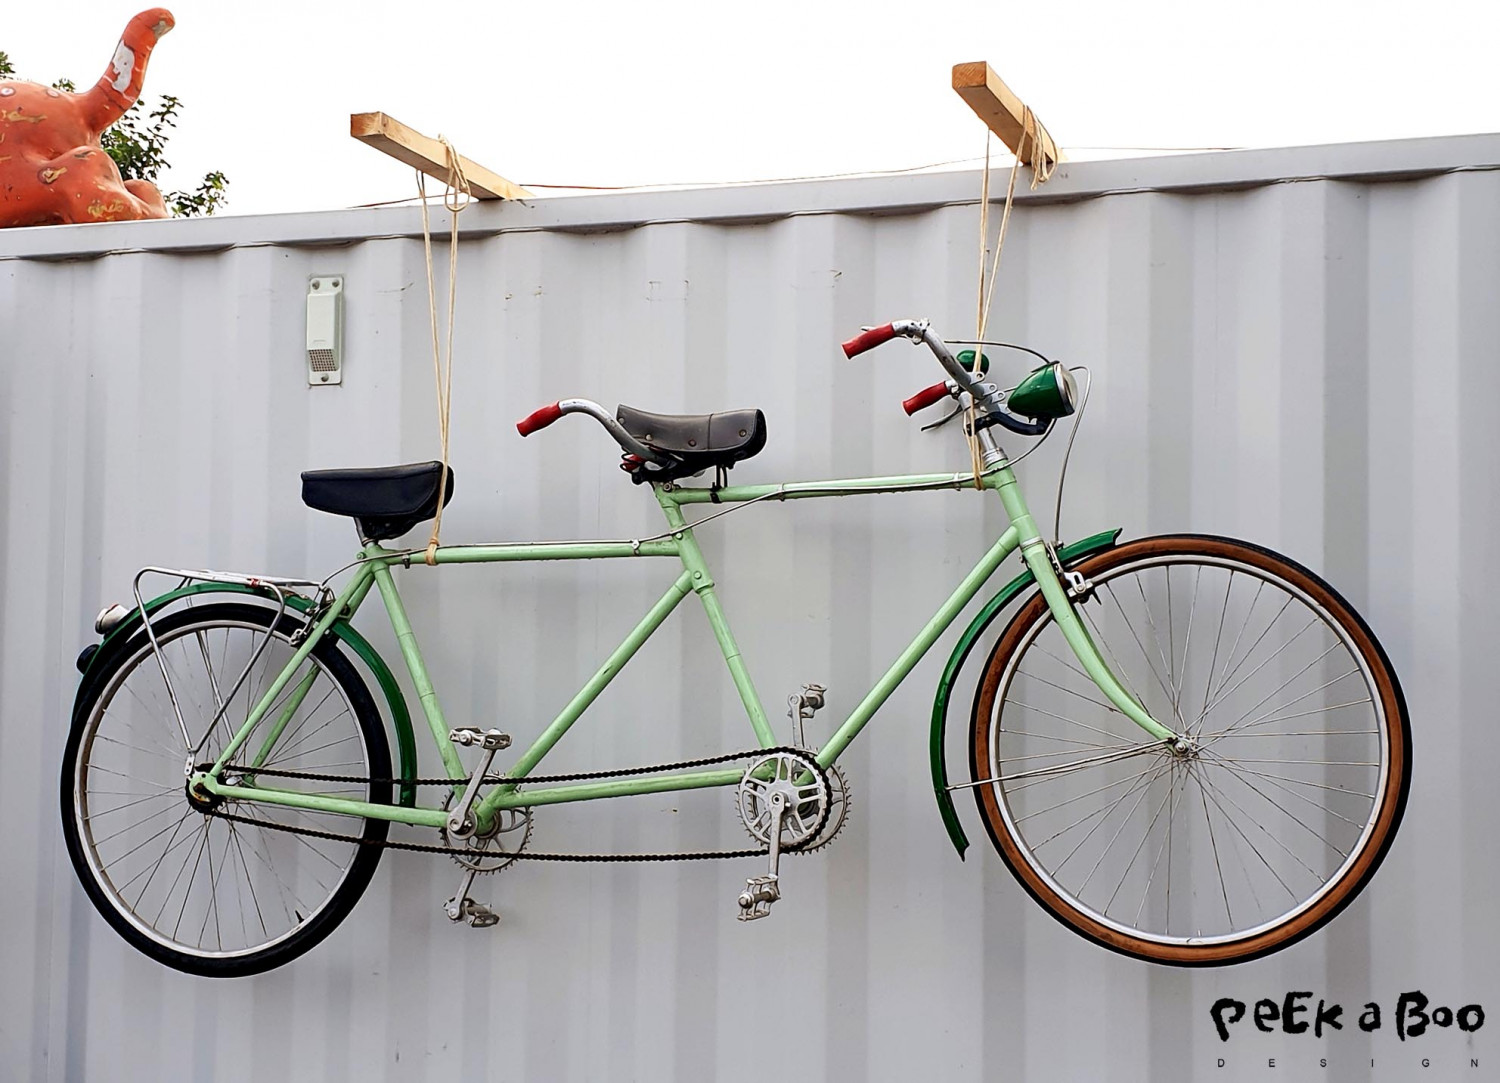 The perfect summerbike for two...a vintage tandem.